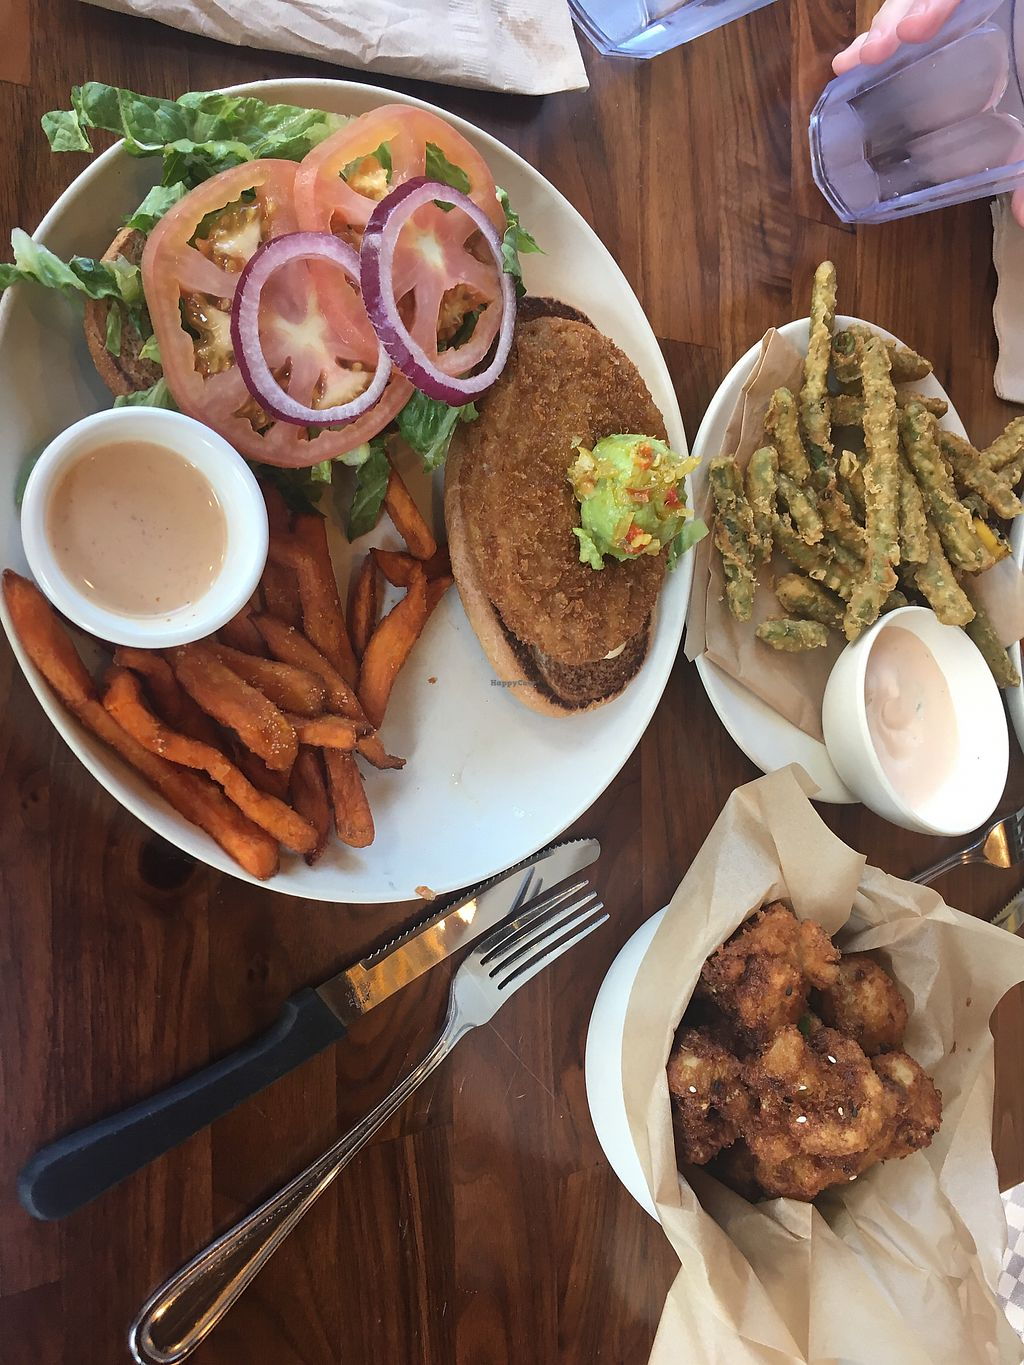 """Photo of Veggie Grill  by <a href=""""/members/profile/mettepalludan"""">mettepalludan</a> <br/>Santa Fe Crispy Chicken + Green Bean stack and fried cauliflower <br/> March 13, 2018  - <a href='/contact/abuse/image/45515/370322'>Report</a>"""